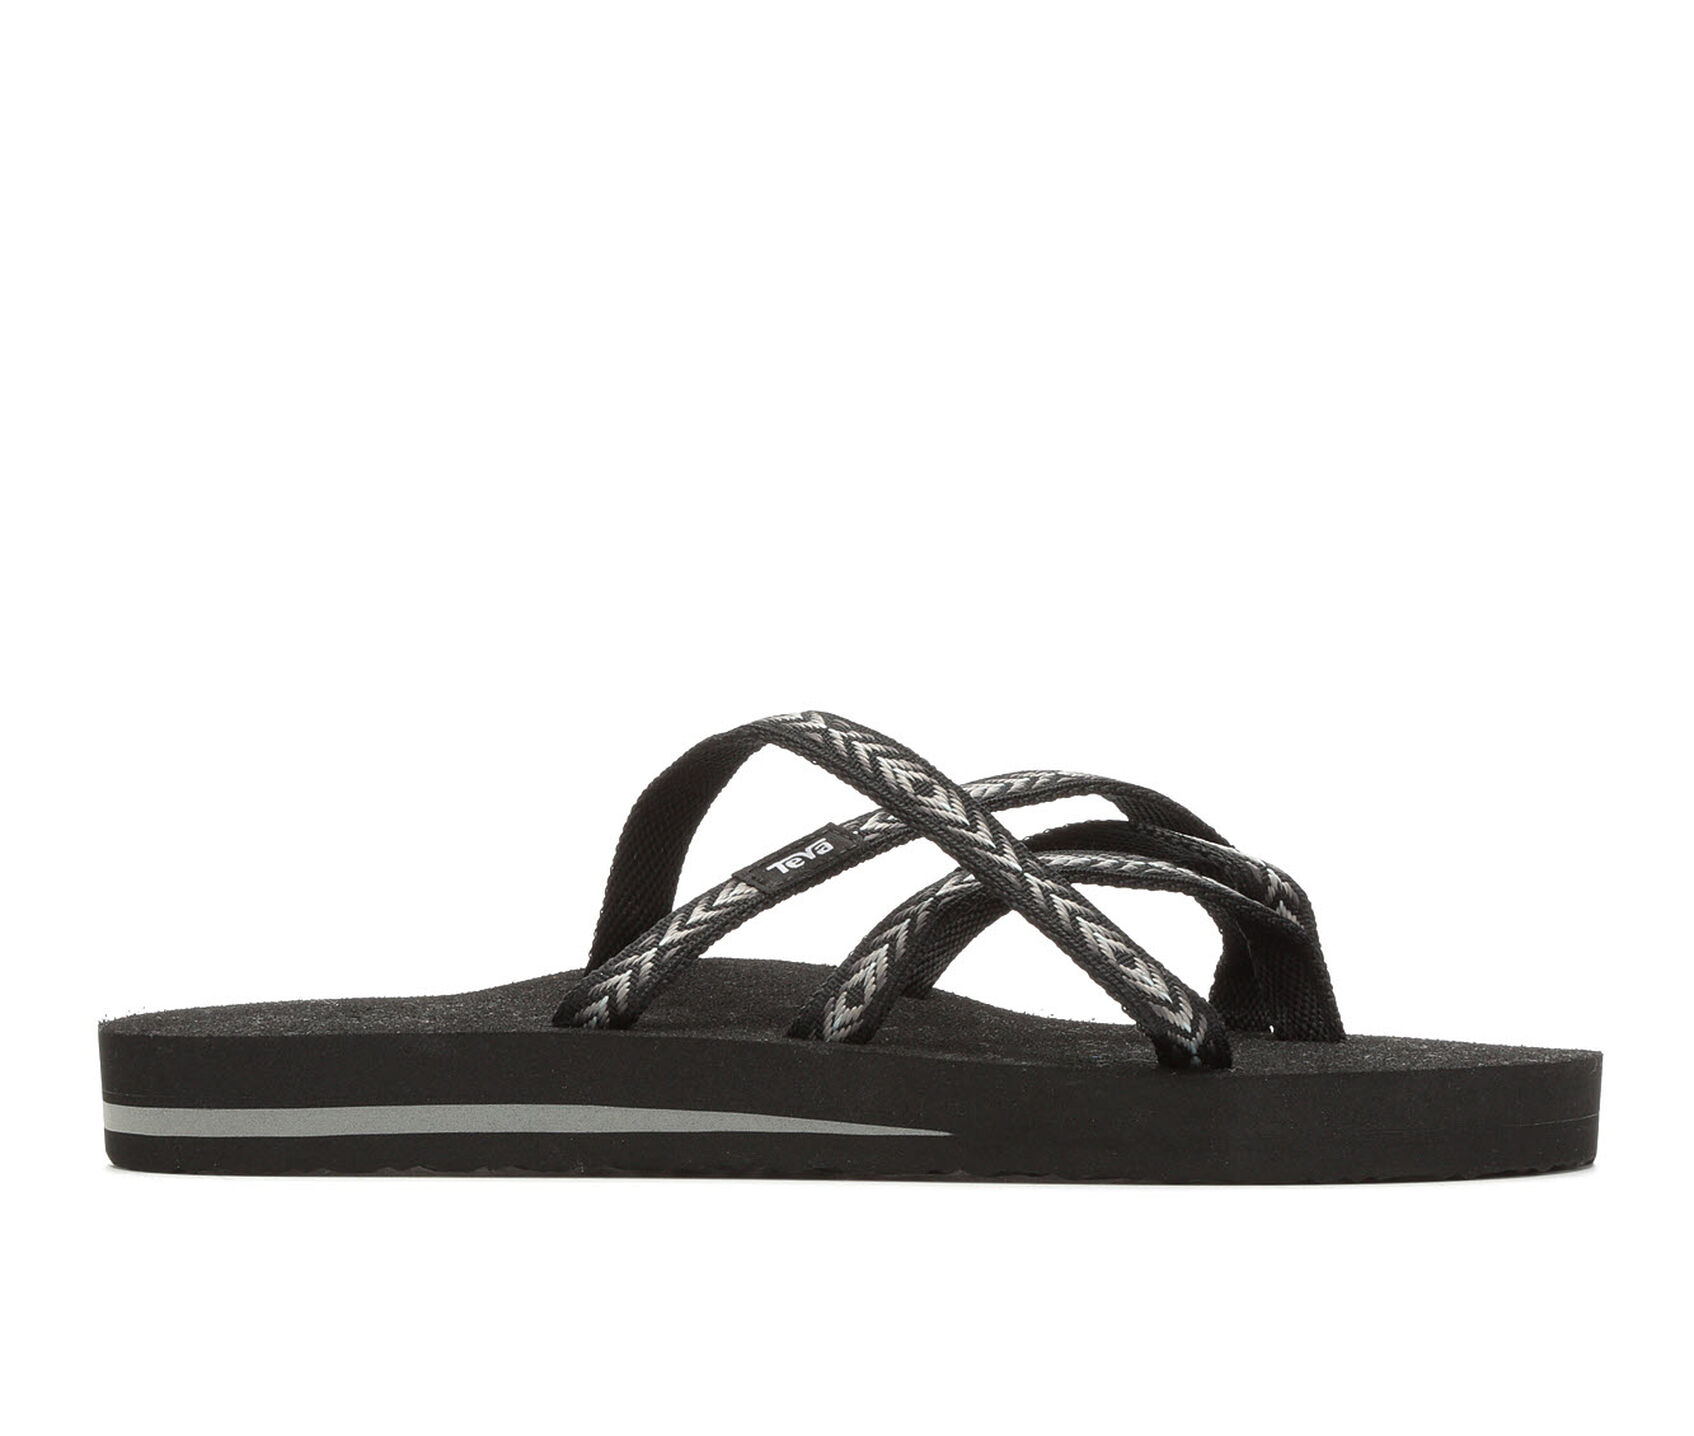 887060c99305 Women s Teva Olowahu Strappy Sandals